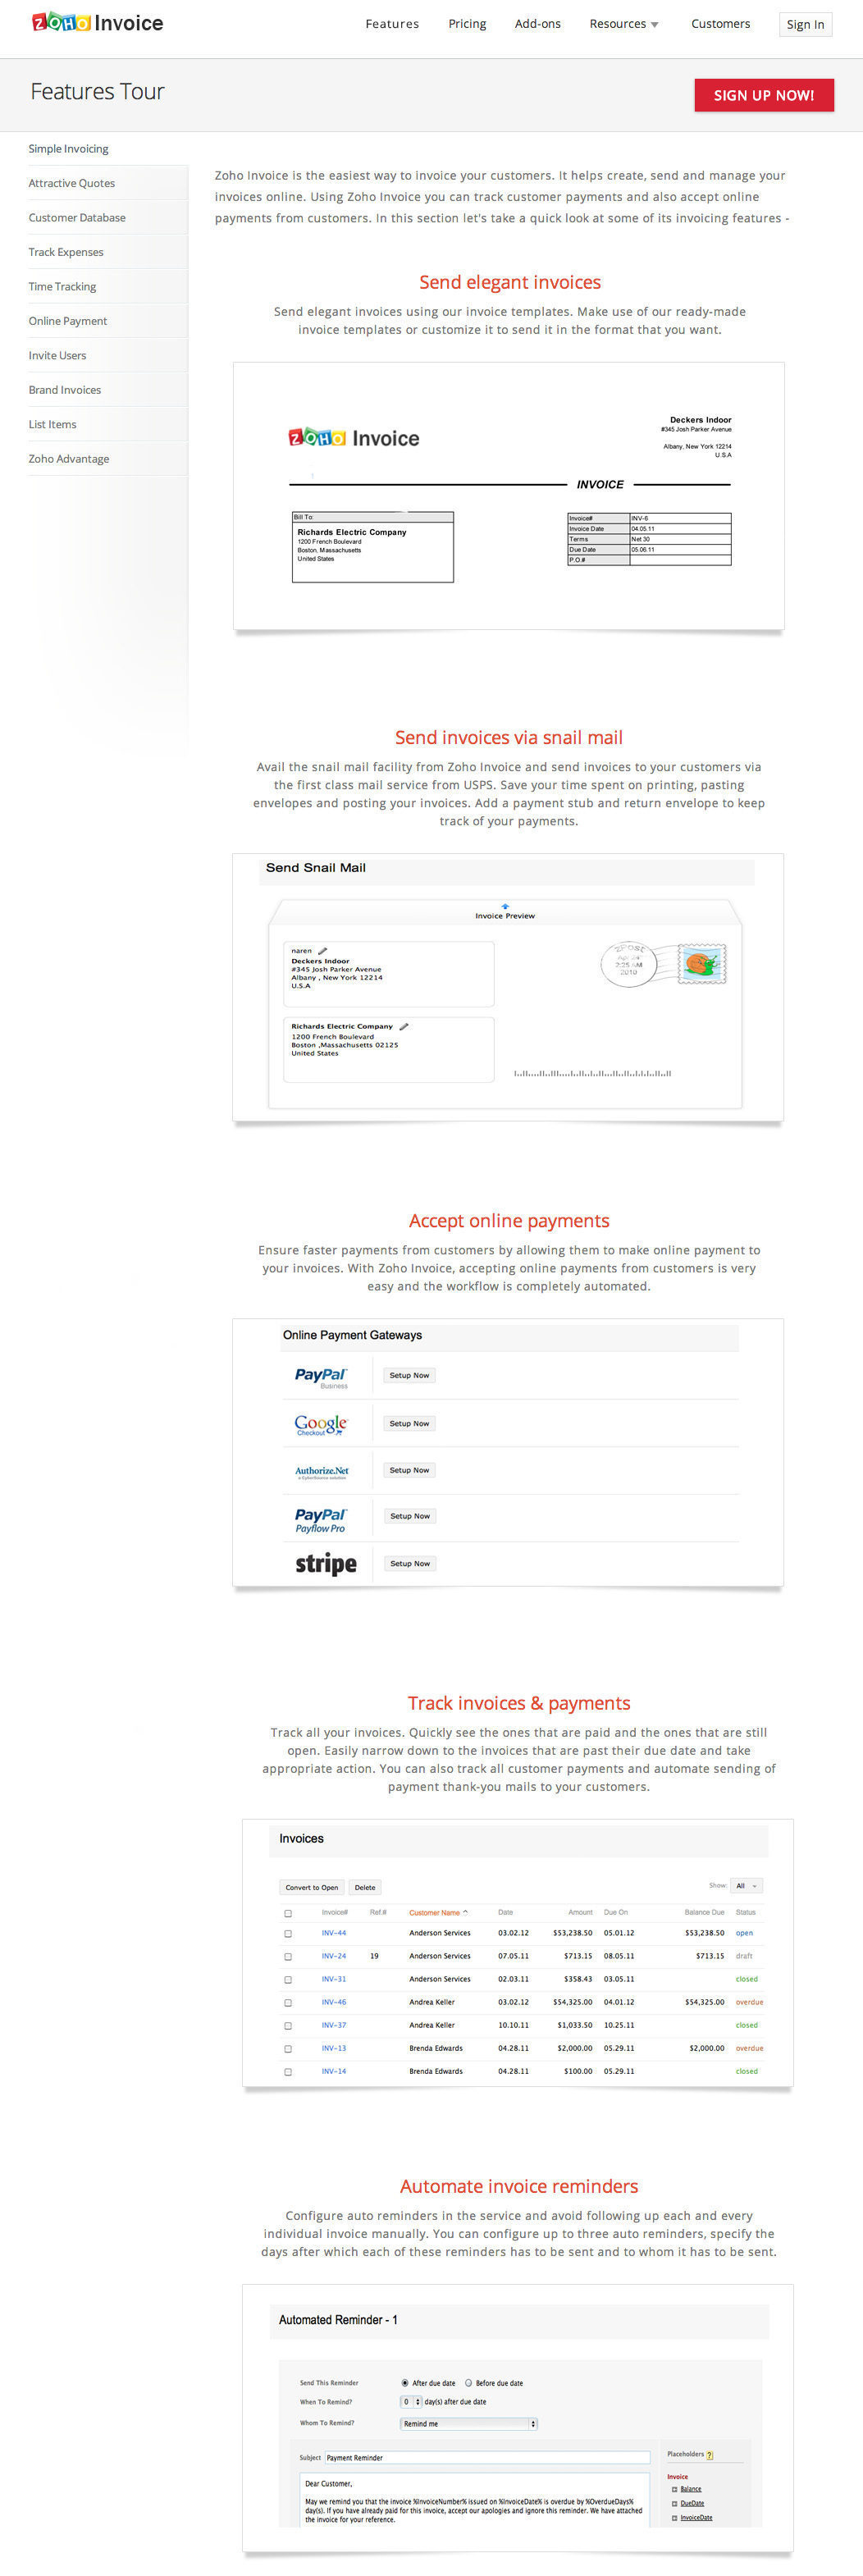 Floobydustus  Marvelous Top  Complaints And Reviews About Zoho Invoice With Lovable Zoho Invoice Pricing Zoho Invoice  Simple Invoicing  With Divine How To Make An Invoice In Word Also Commercial Invoice Ups In Addition Invoice Books And How To Create Invoice As Well As Toll By Plate Invoice Payment Additionally Invoice Template Open Office From Consumeraffairscom With Floobydustus  Lovable Top  Complaints And Reviews About Zoho Invoice With Divine Zoho Invoice Pricing Zoho Invoice  Simple Invoicing  And Marvelous How To Make An Invoice In Word Also Commercial Invoice Ups In Addition Invoice Books From Consumeraffairscom